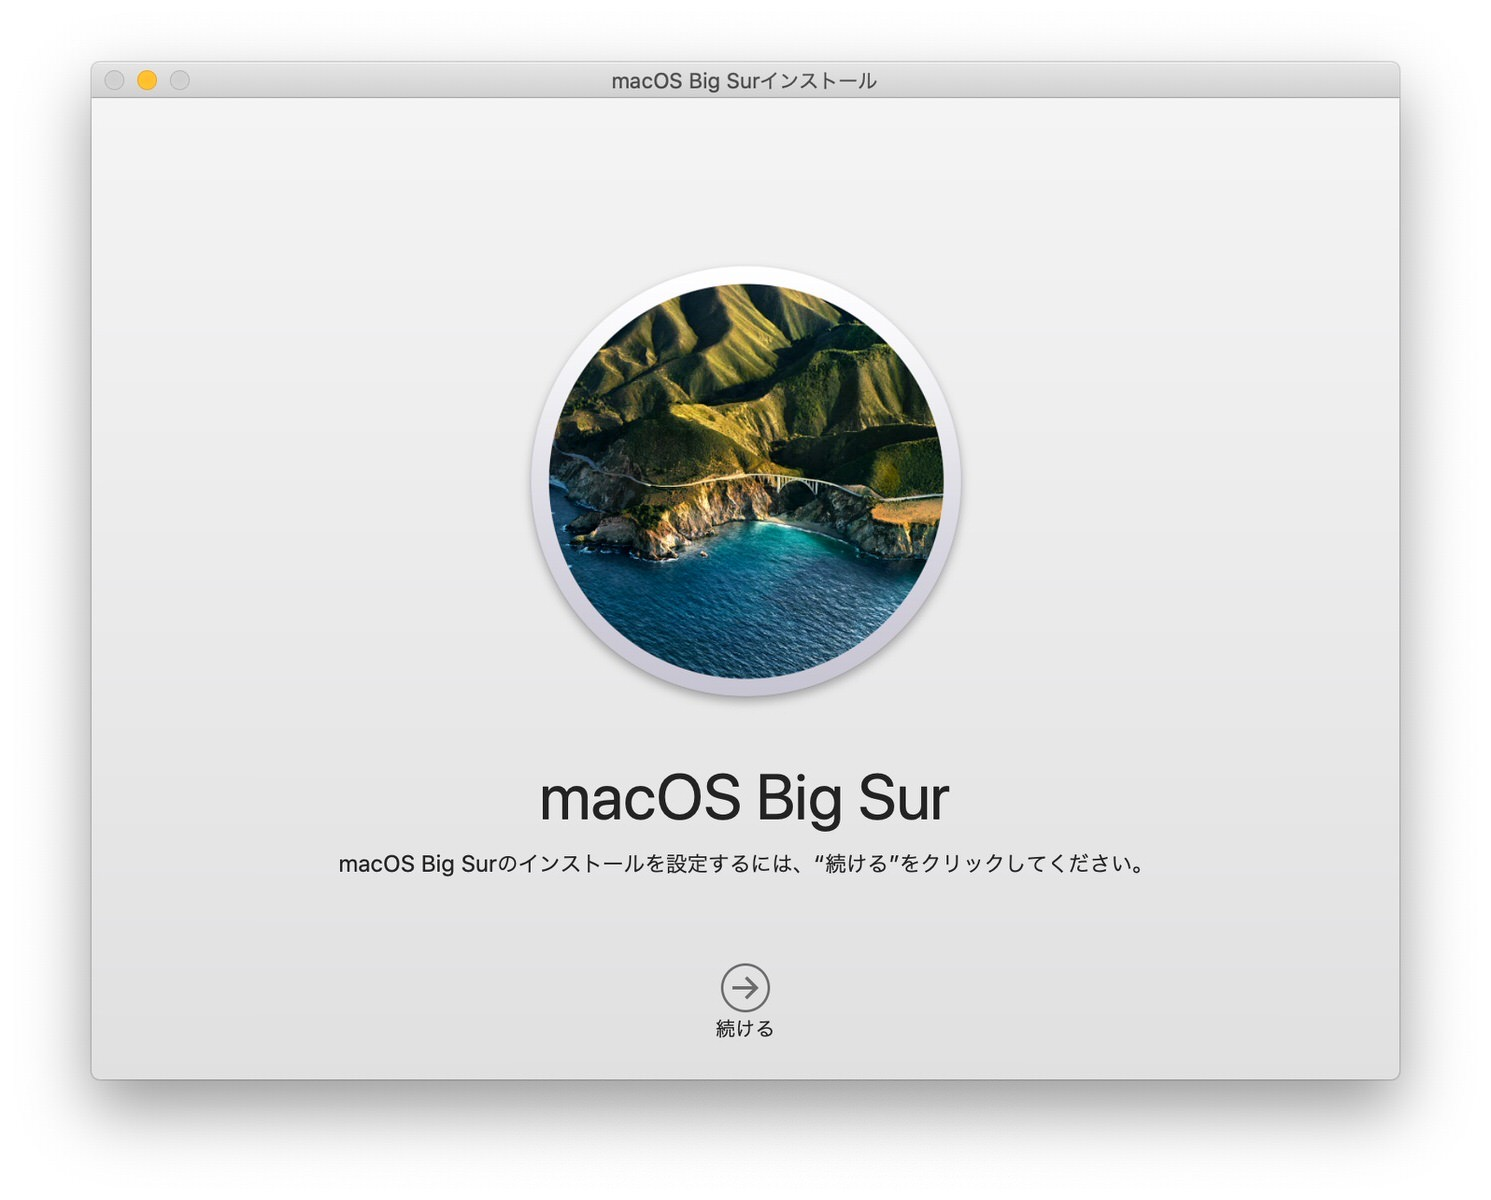 macOS Big Sir−2